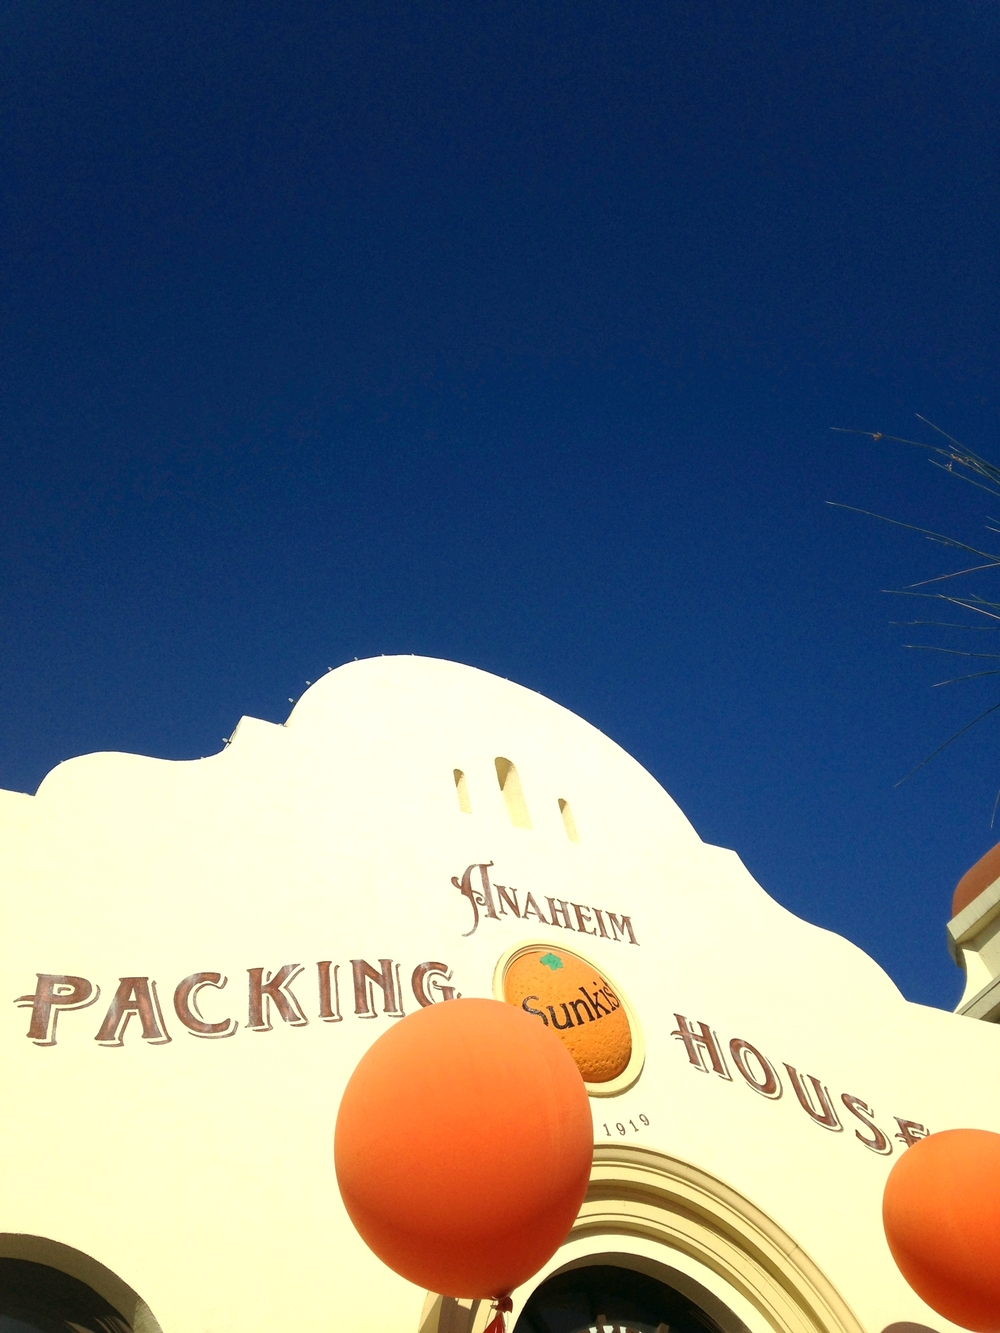 Anaheim Packing House / Downtown Anaheim